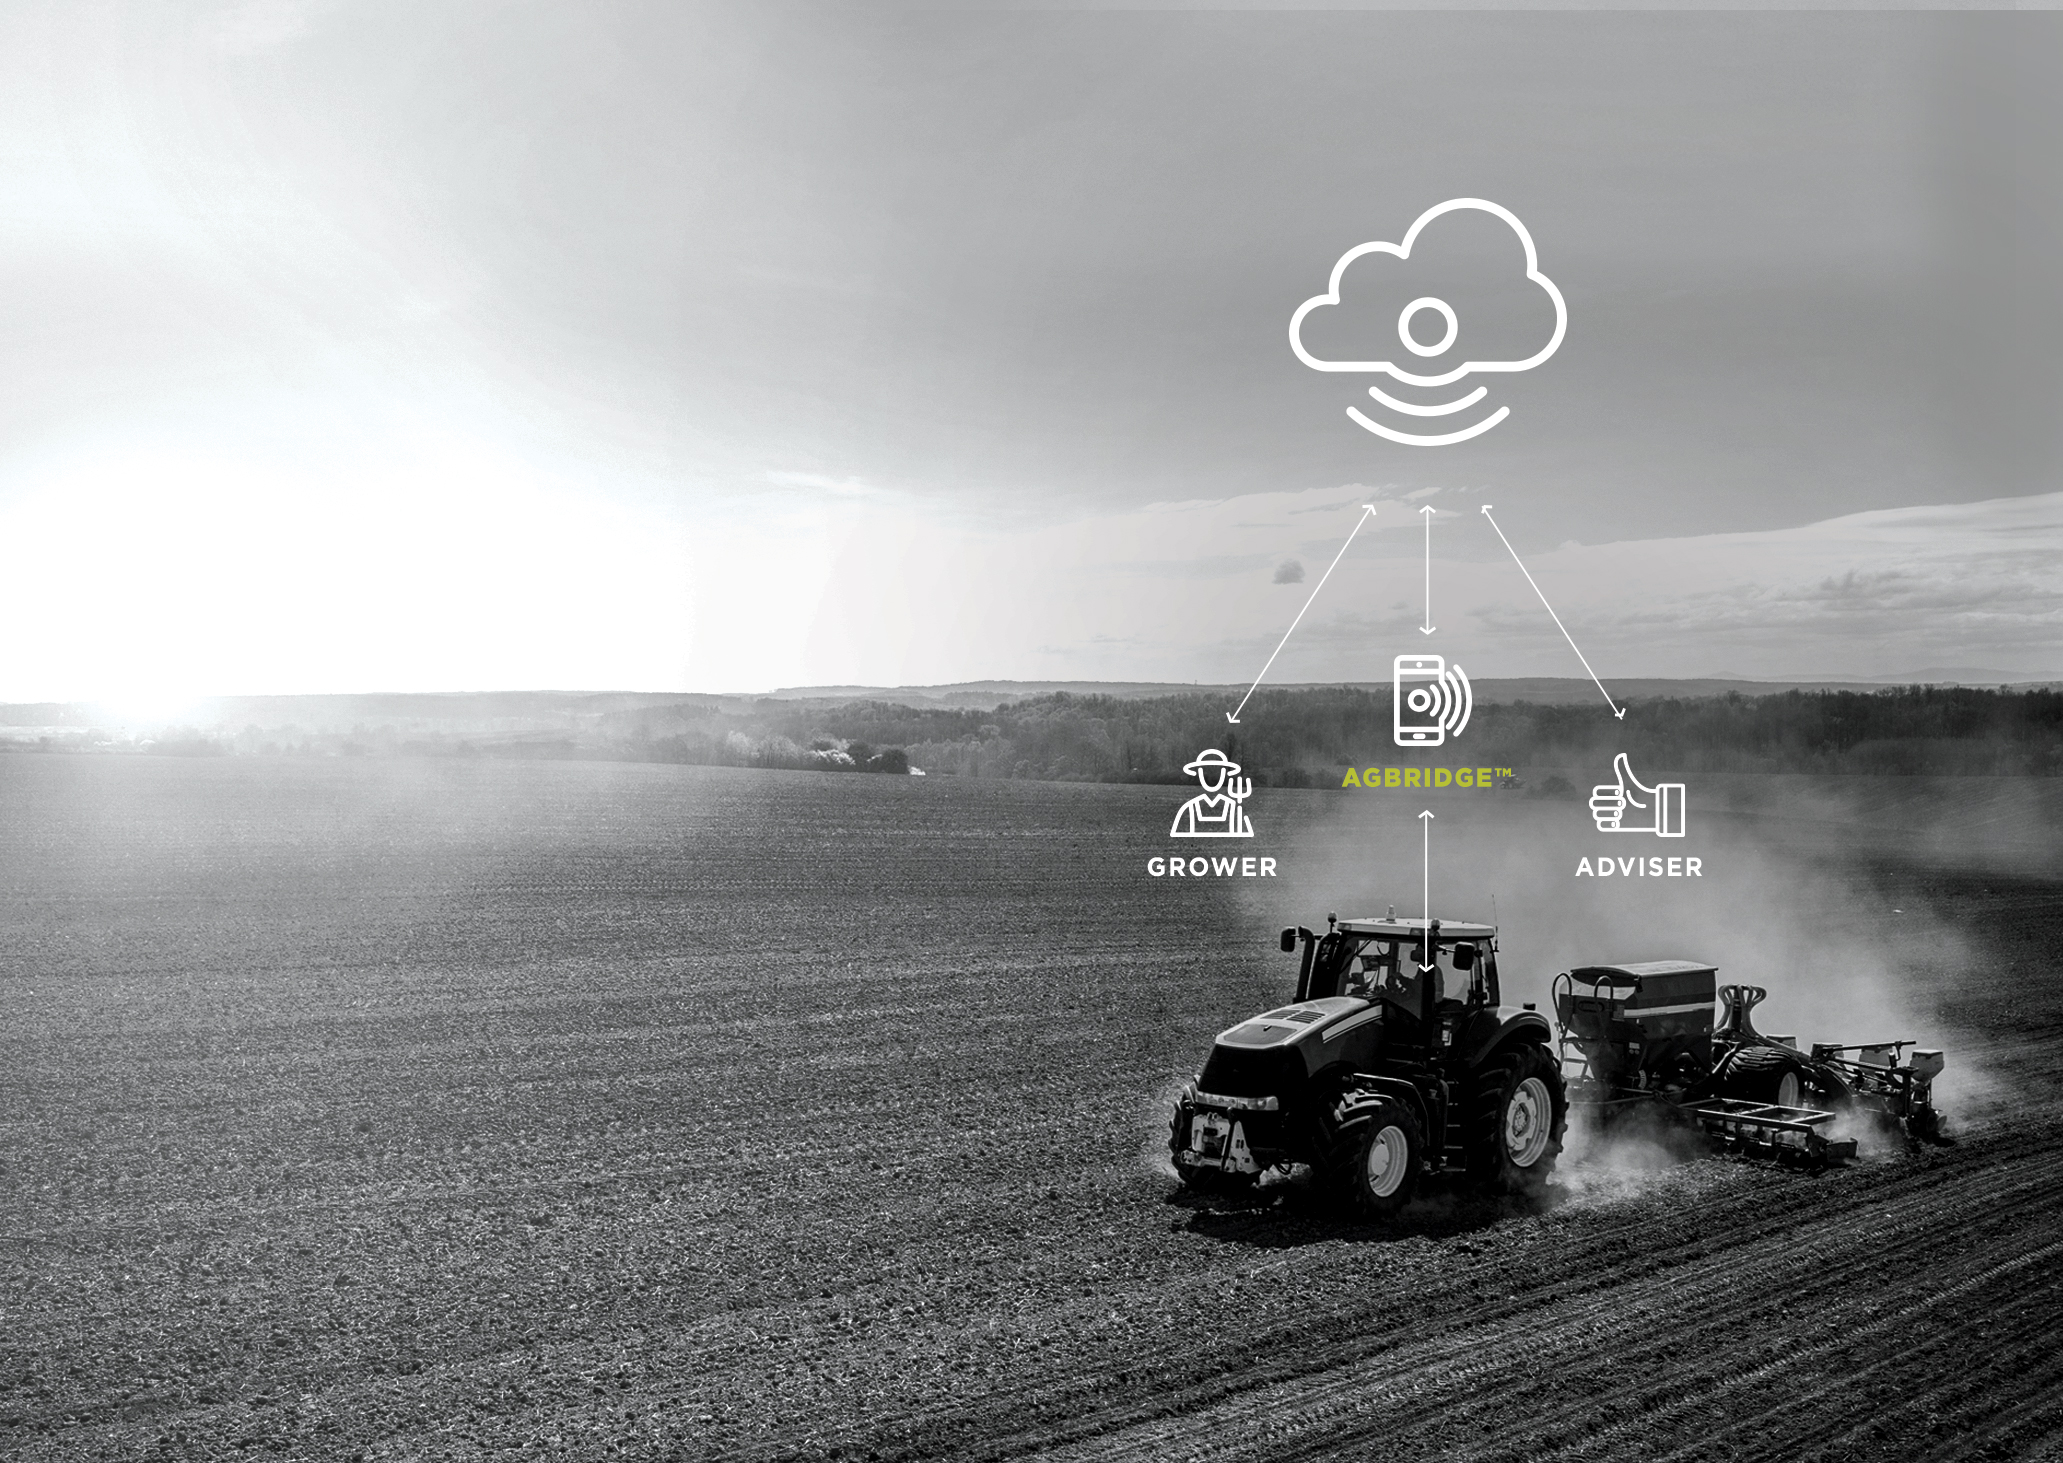 Precision Ag Data is transported to and from a smart device via the AGBRIDGE™ App